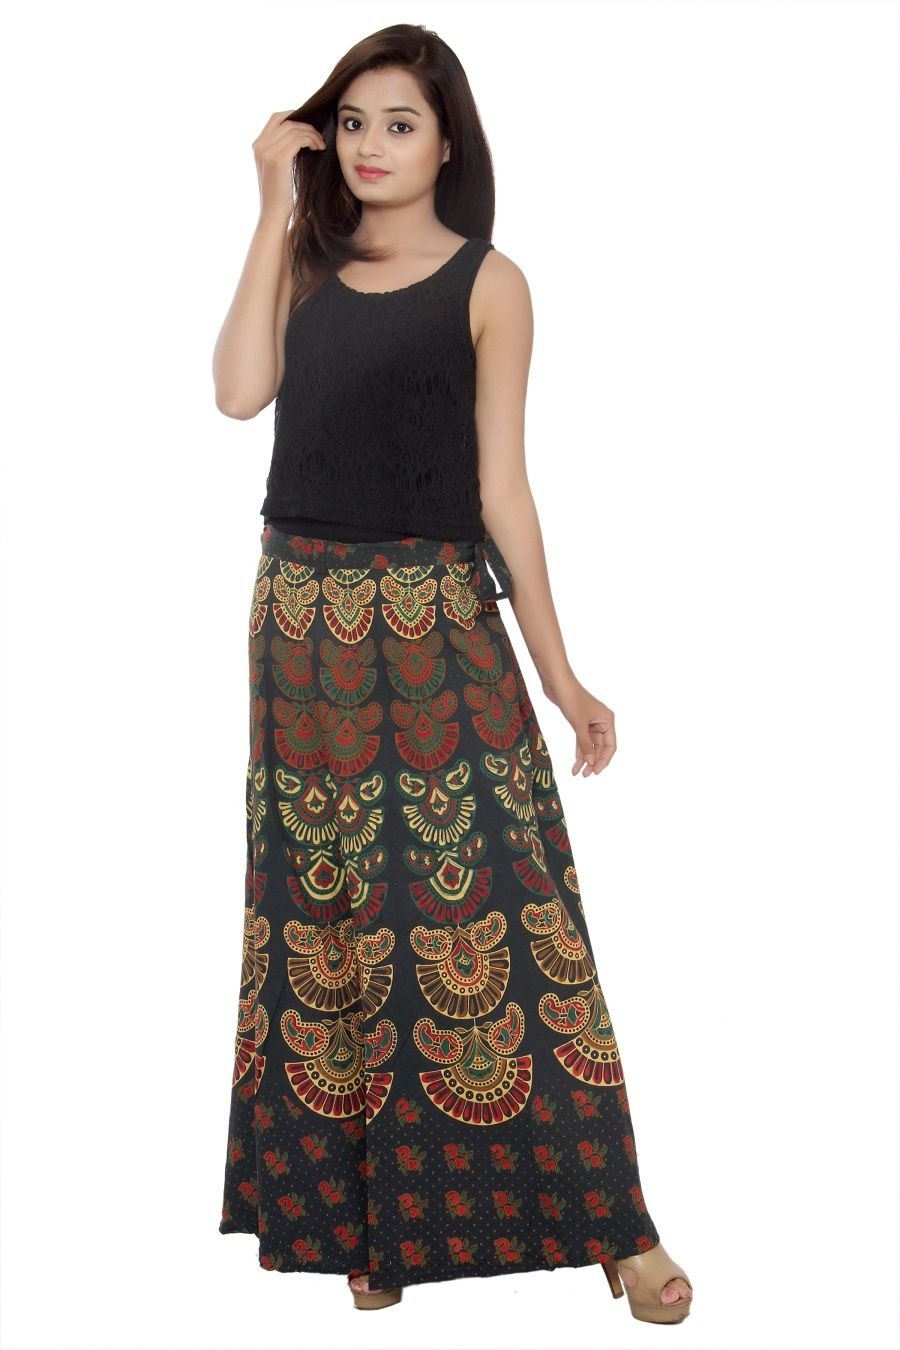 Wrap indian skirt how to wear images